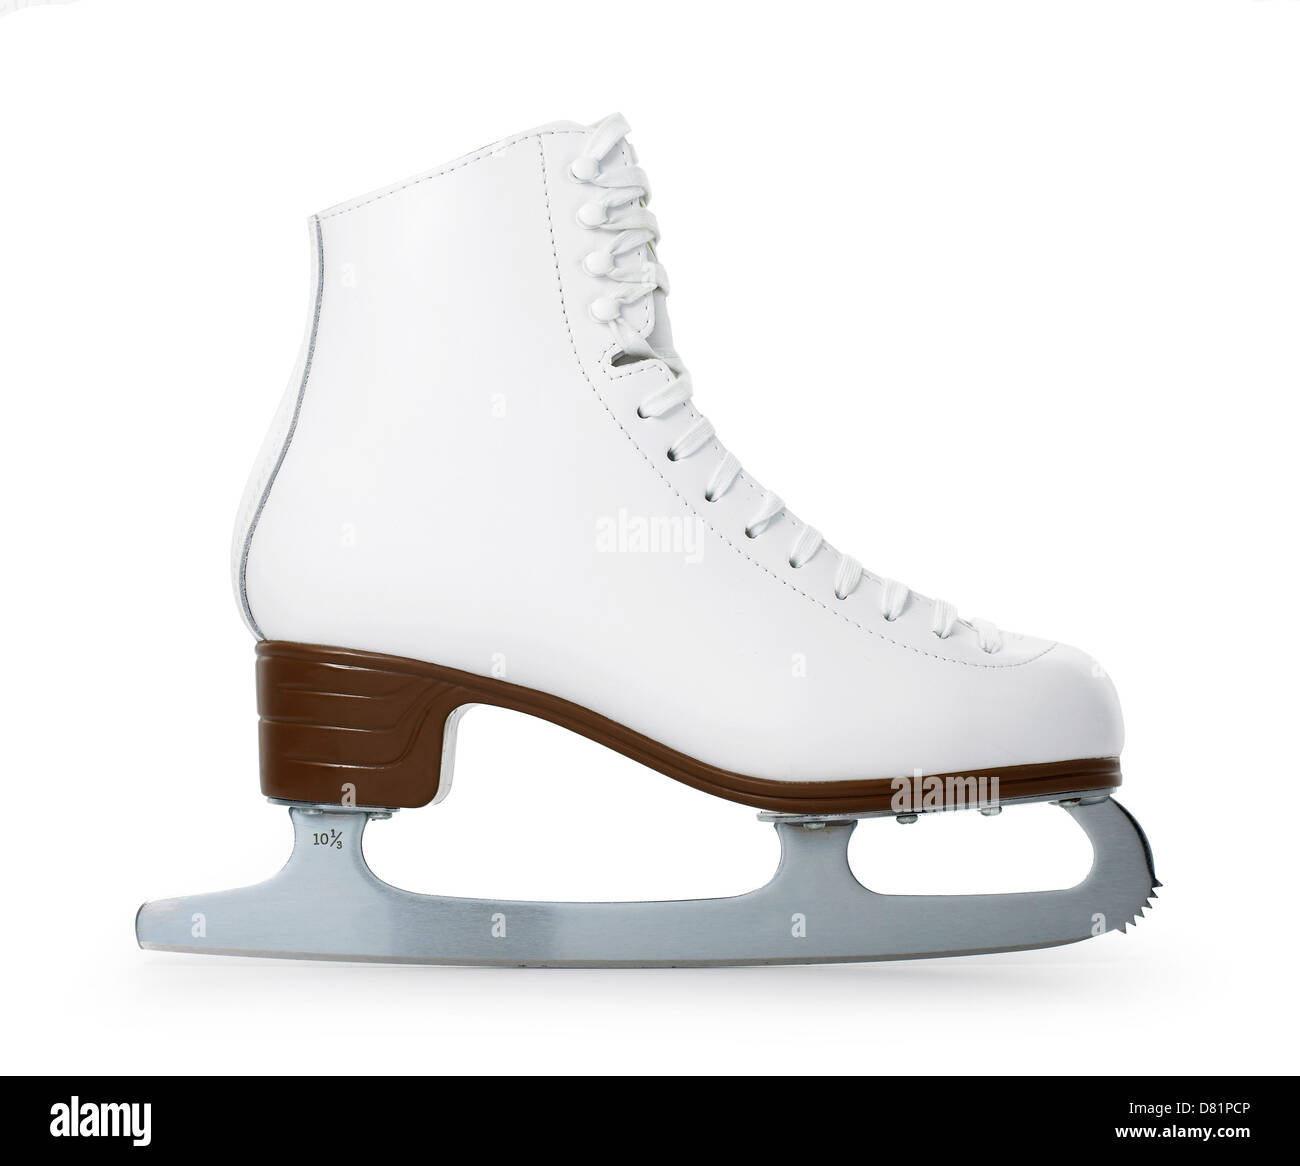 ice skate boot cut out onto a white background - Stock Image